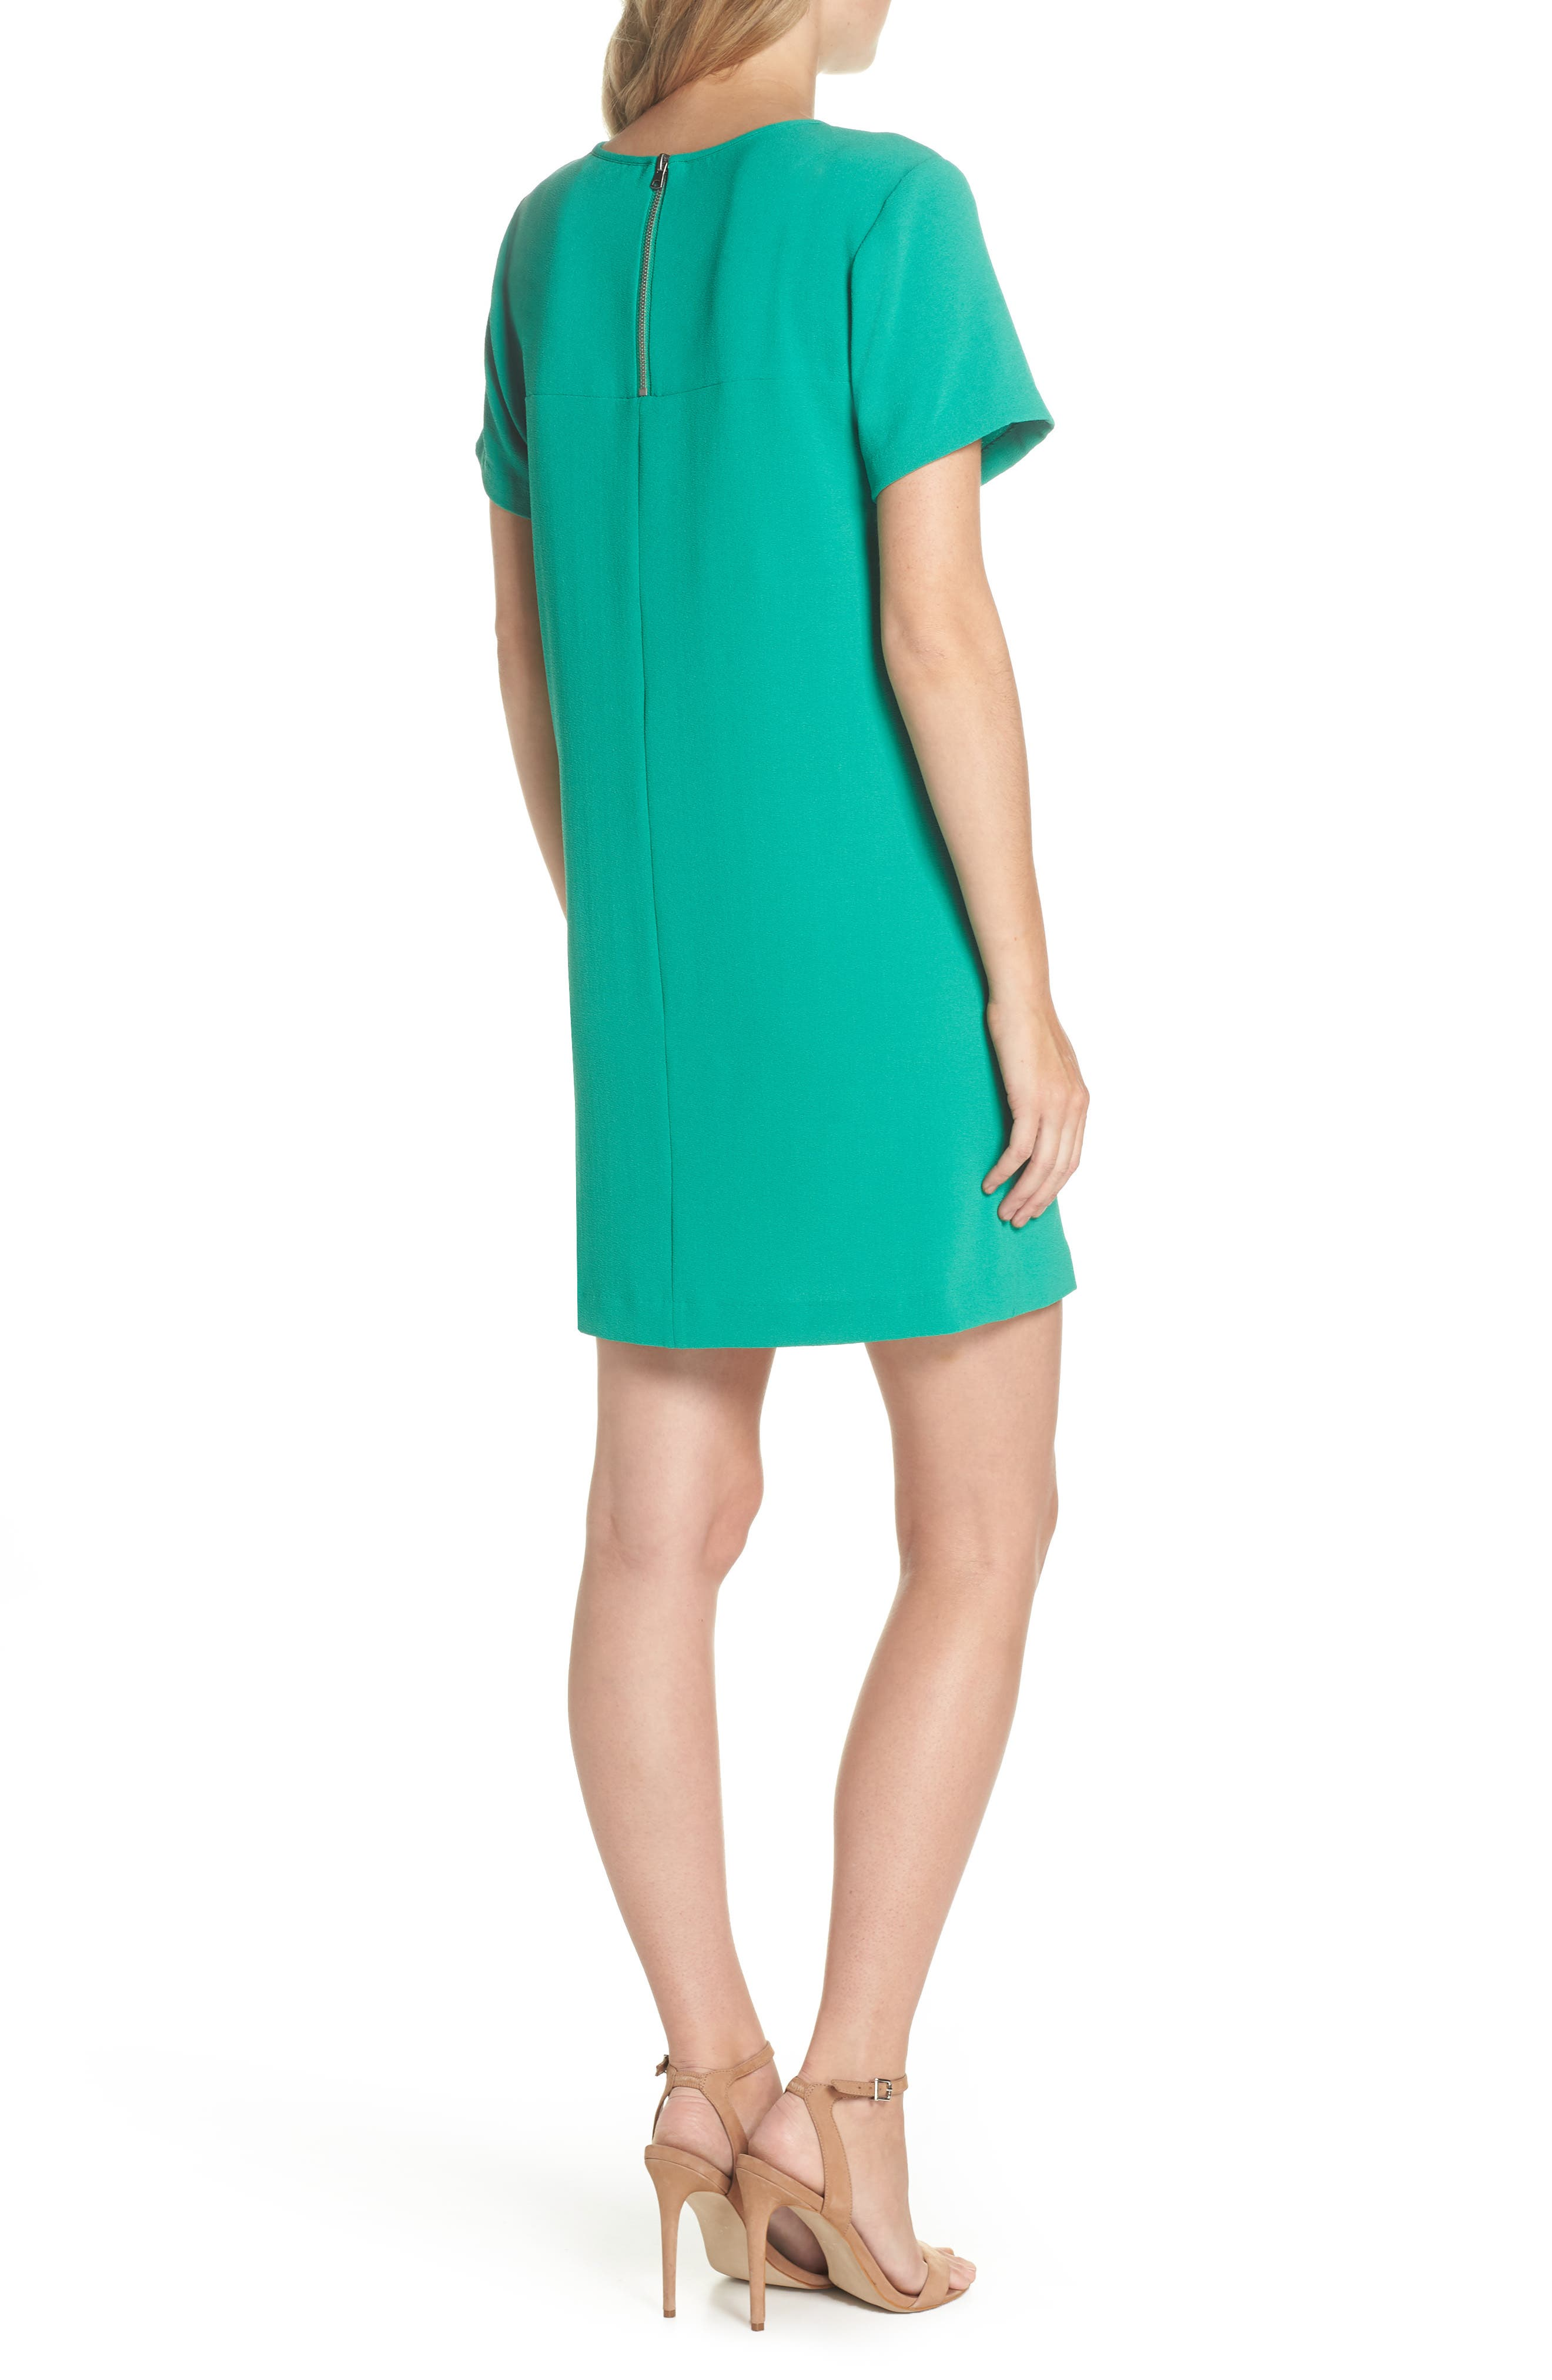 Devery Crepe Shift Dress,                             Alternate thumbnail 2, color,                             Emerald Green